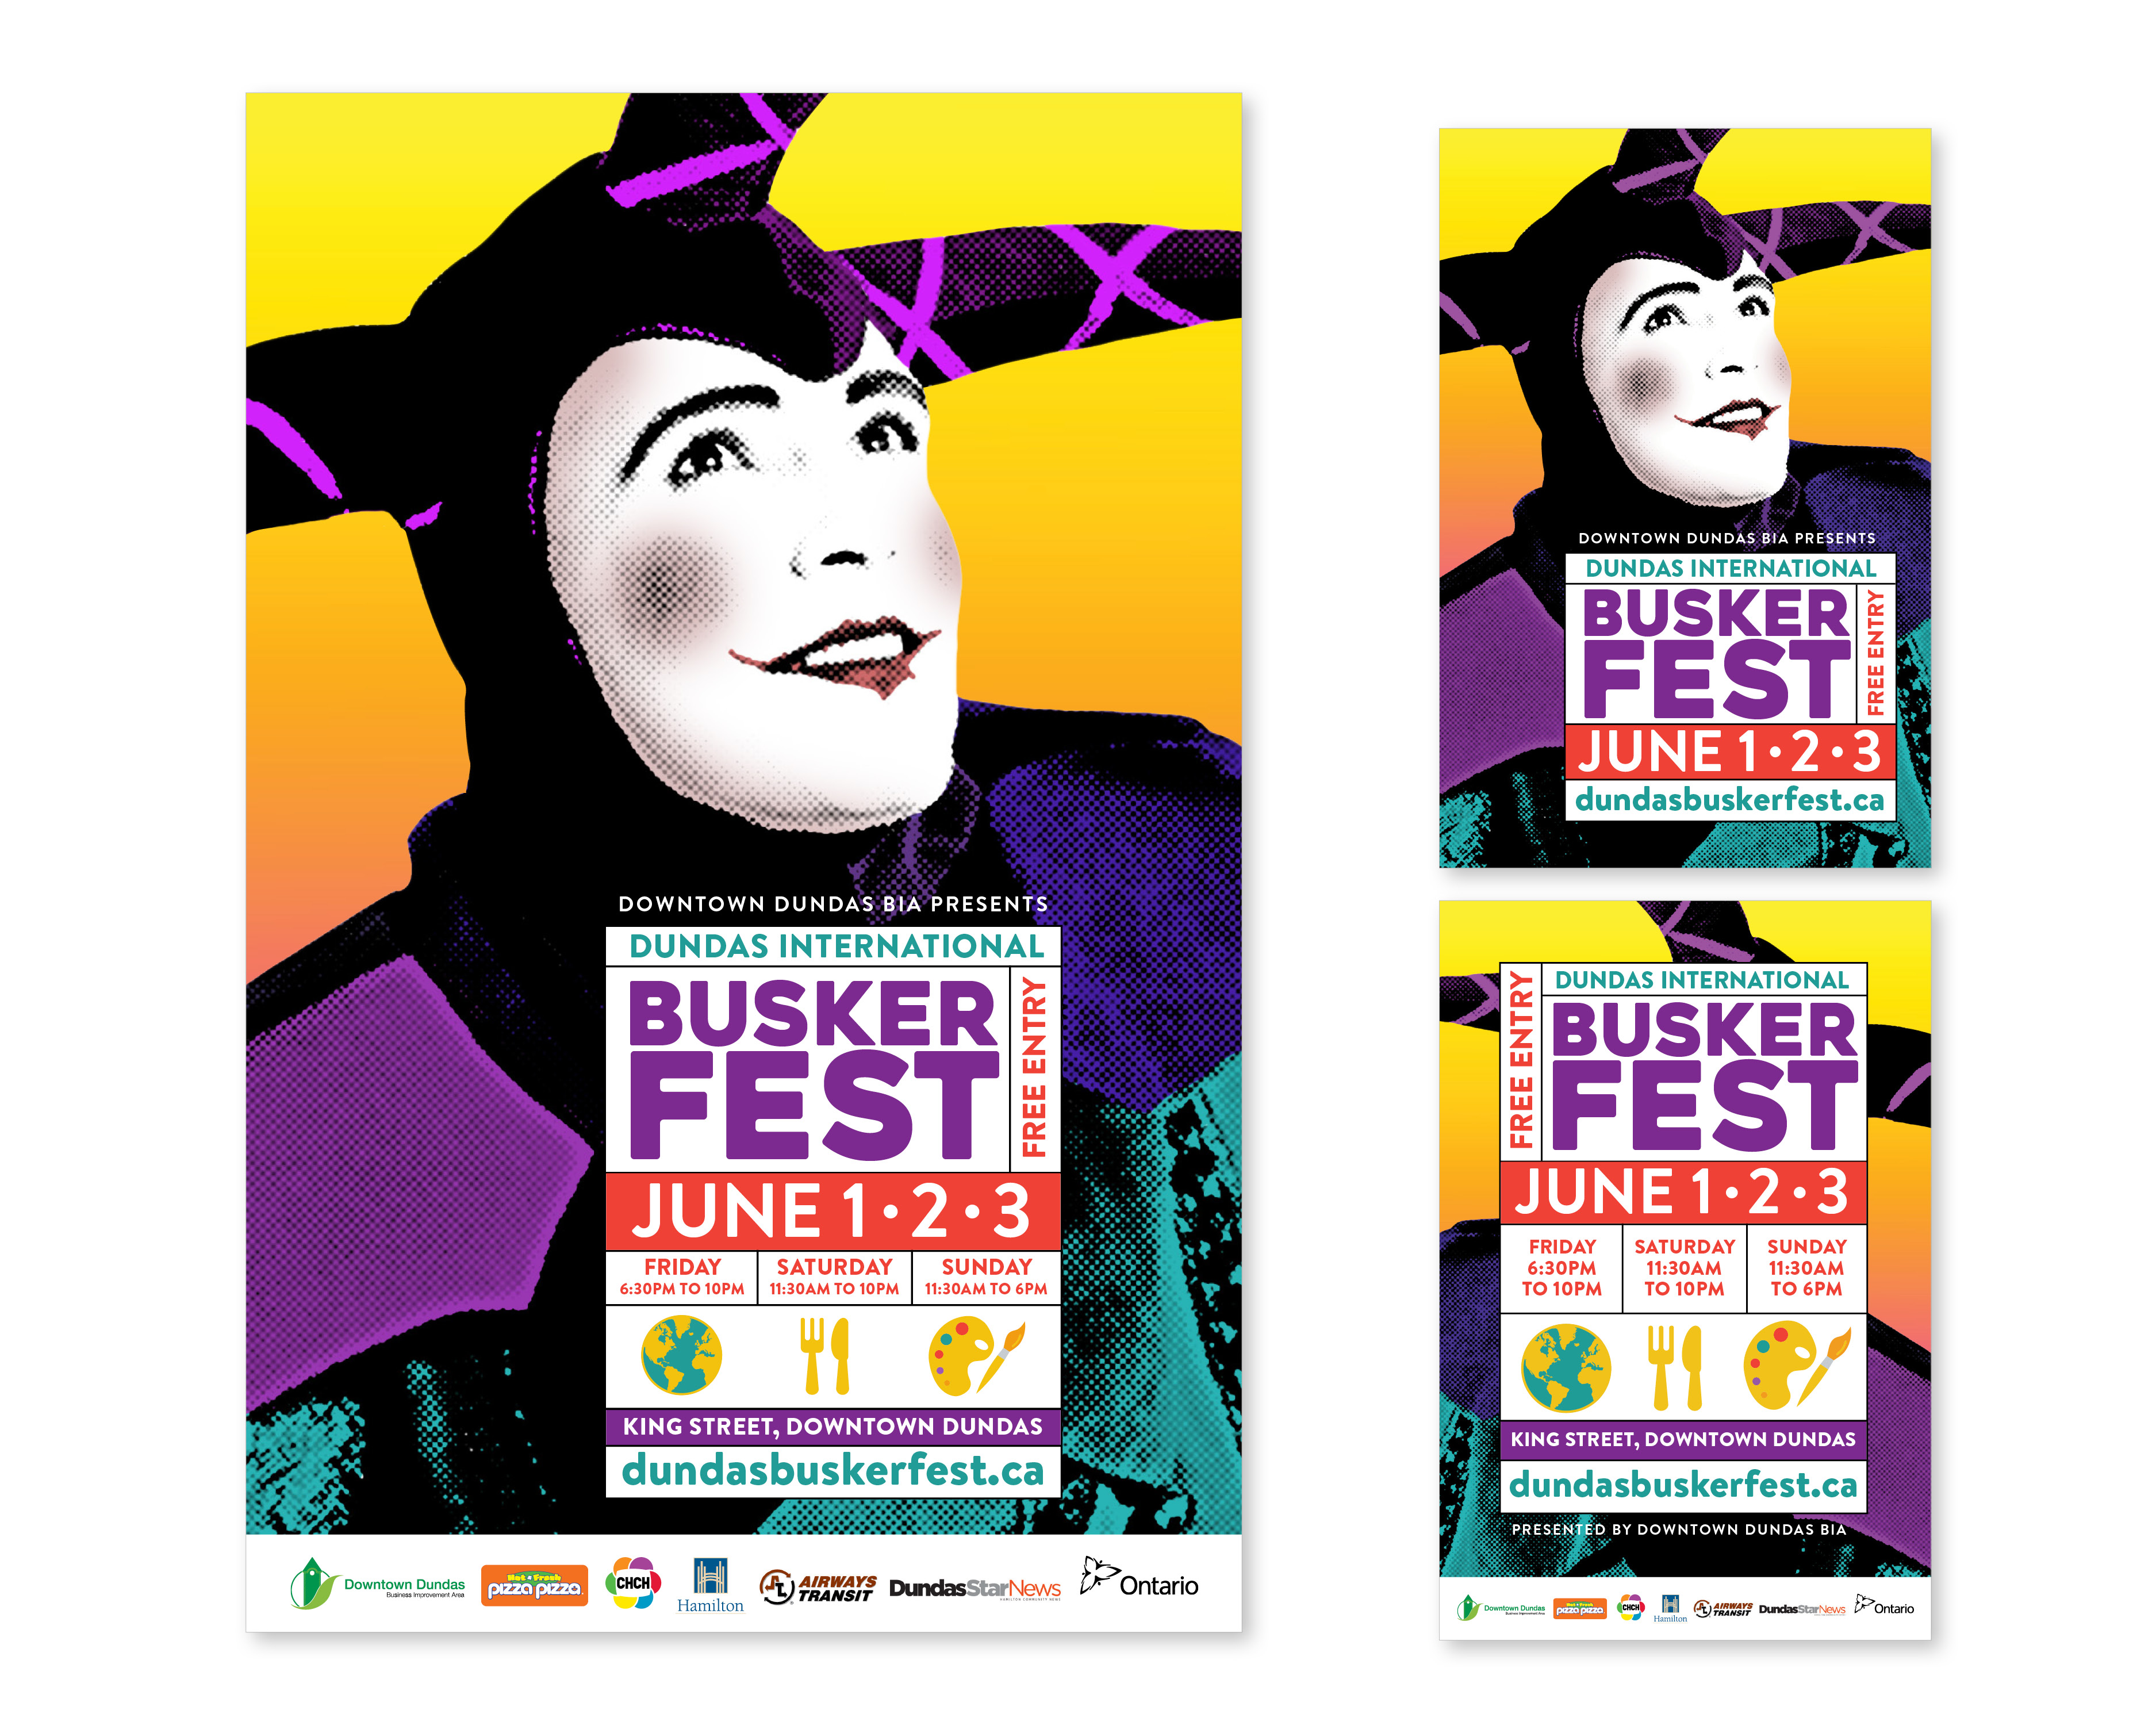 Dundas Buskerfest 2018 Poster and postcards